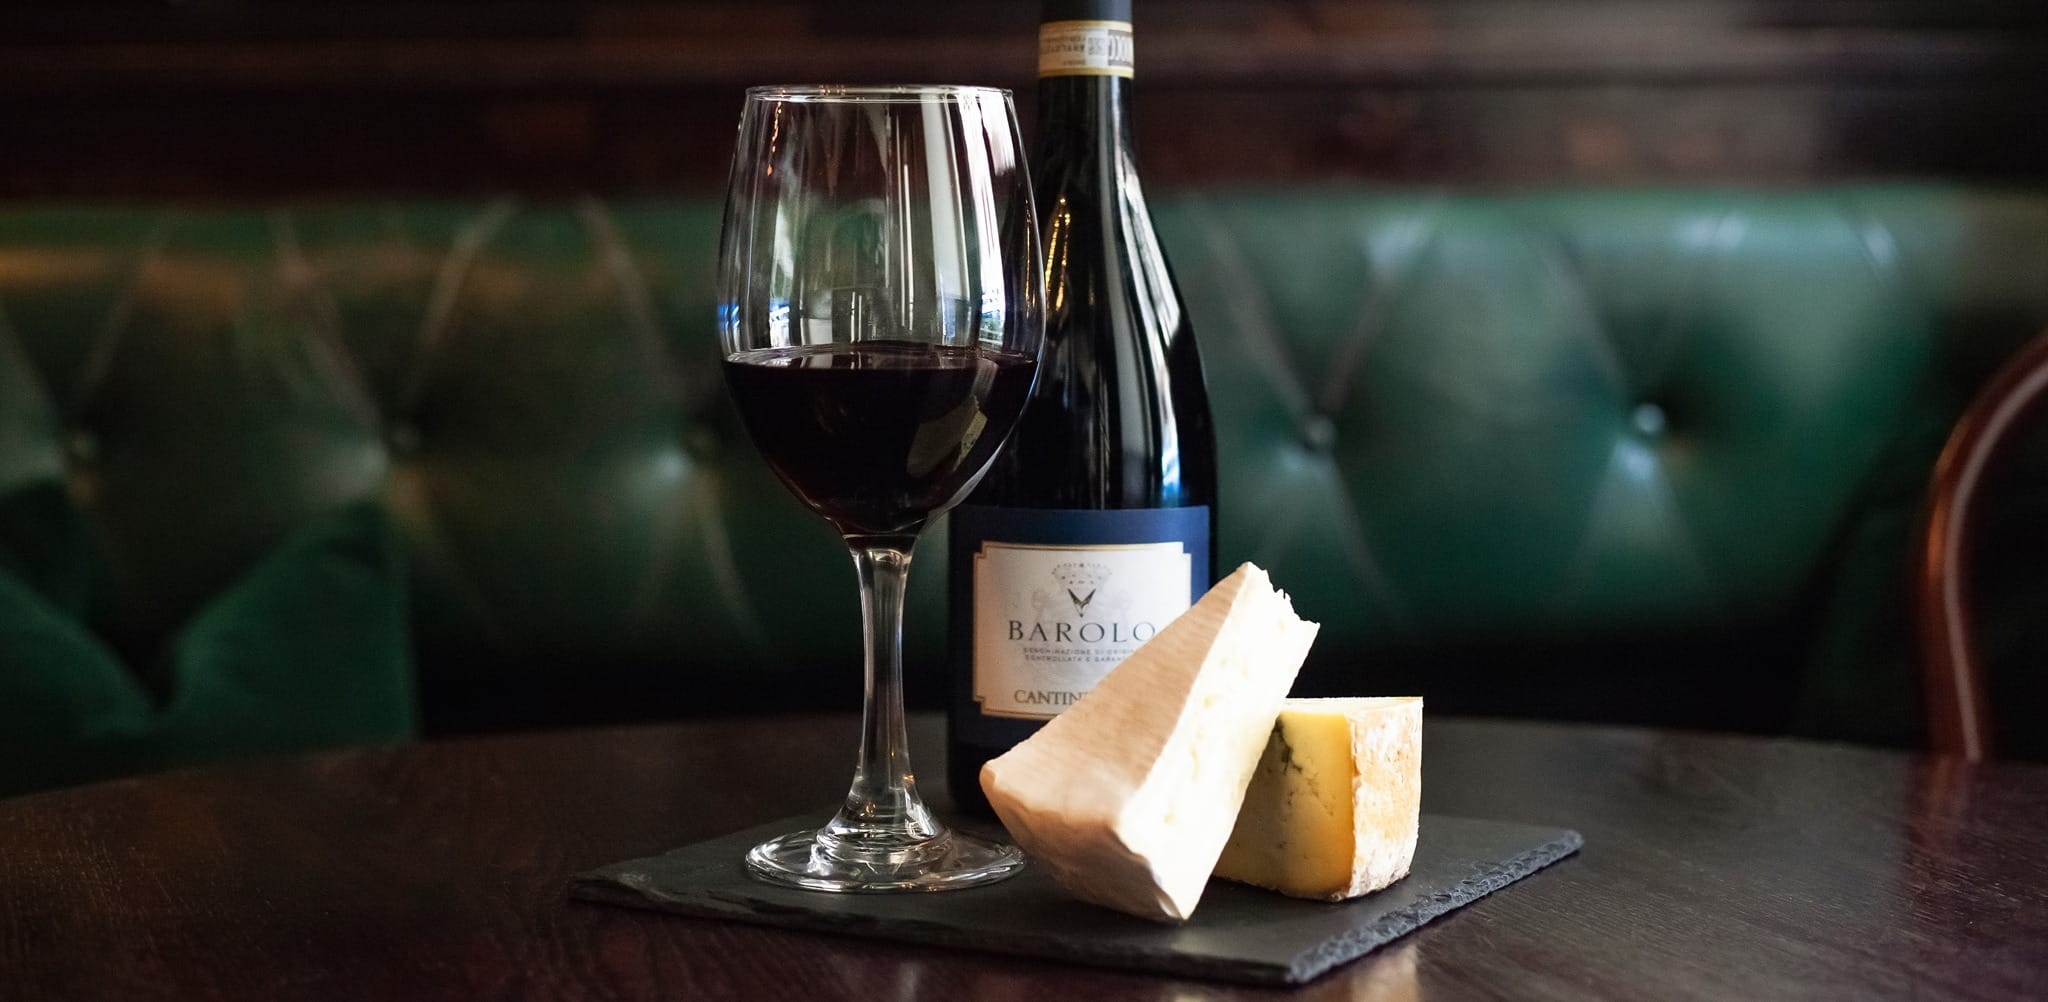 Best Wine Bars in the UK